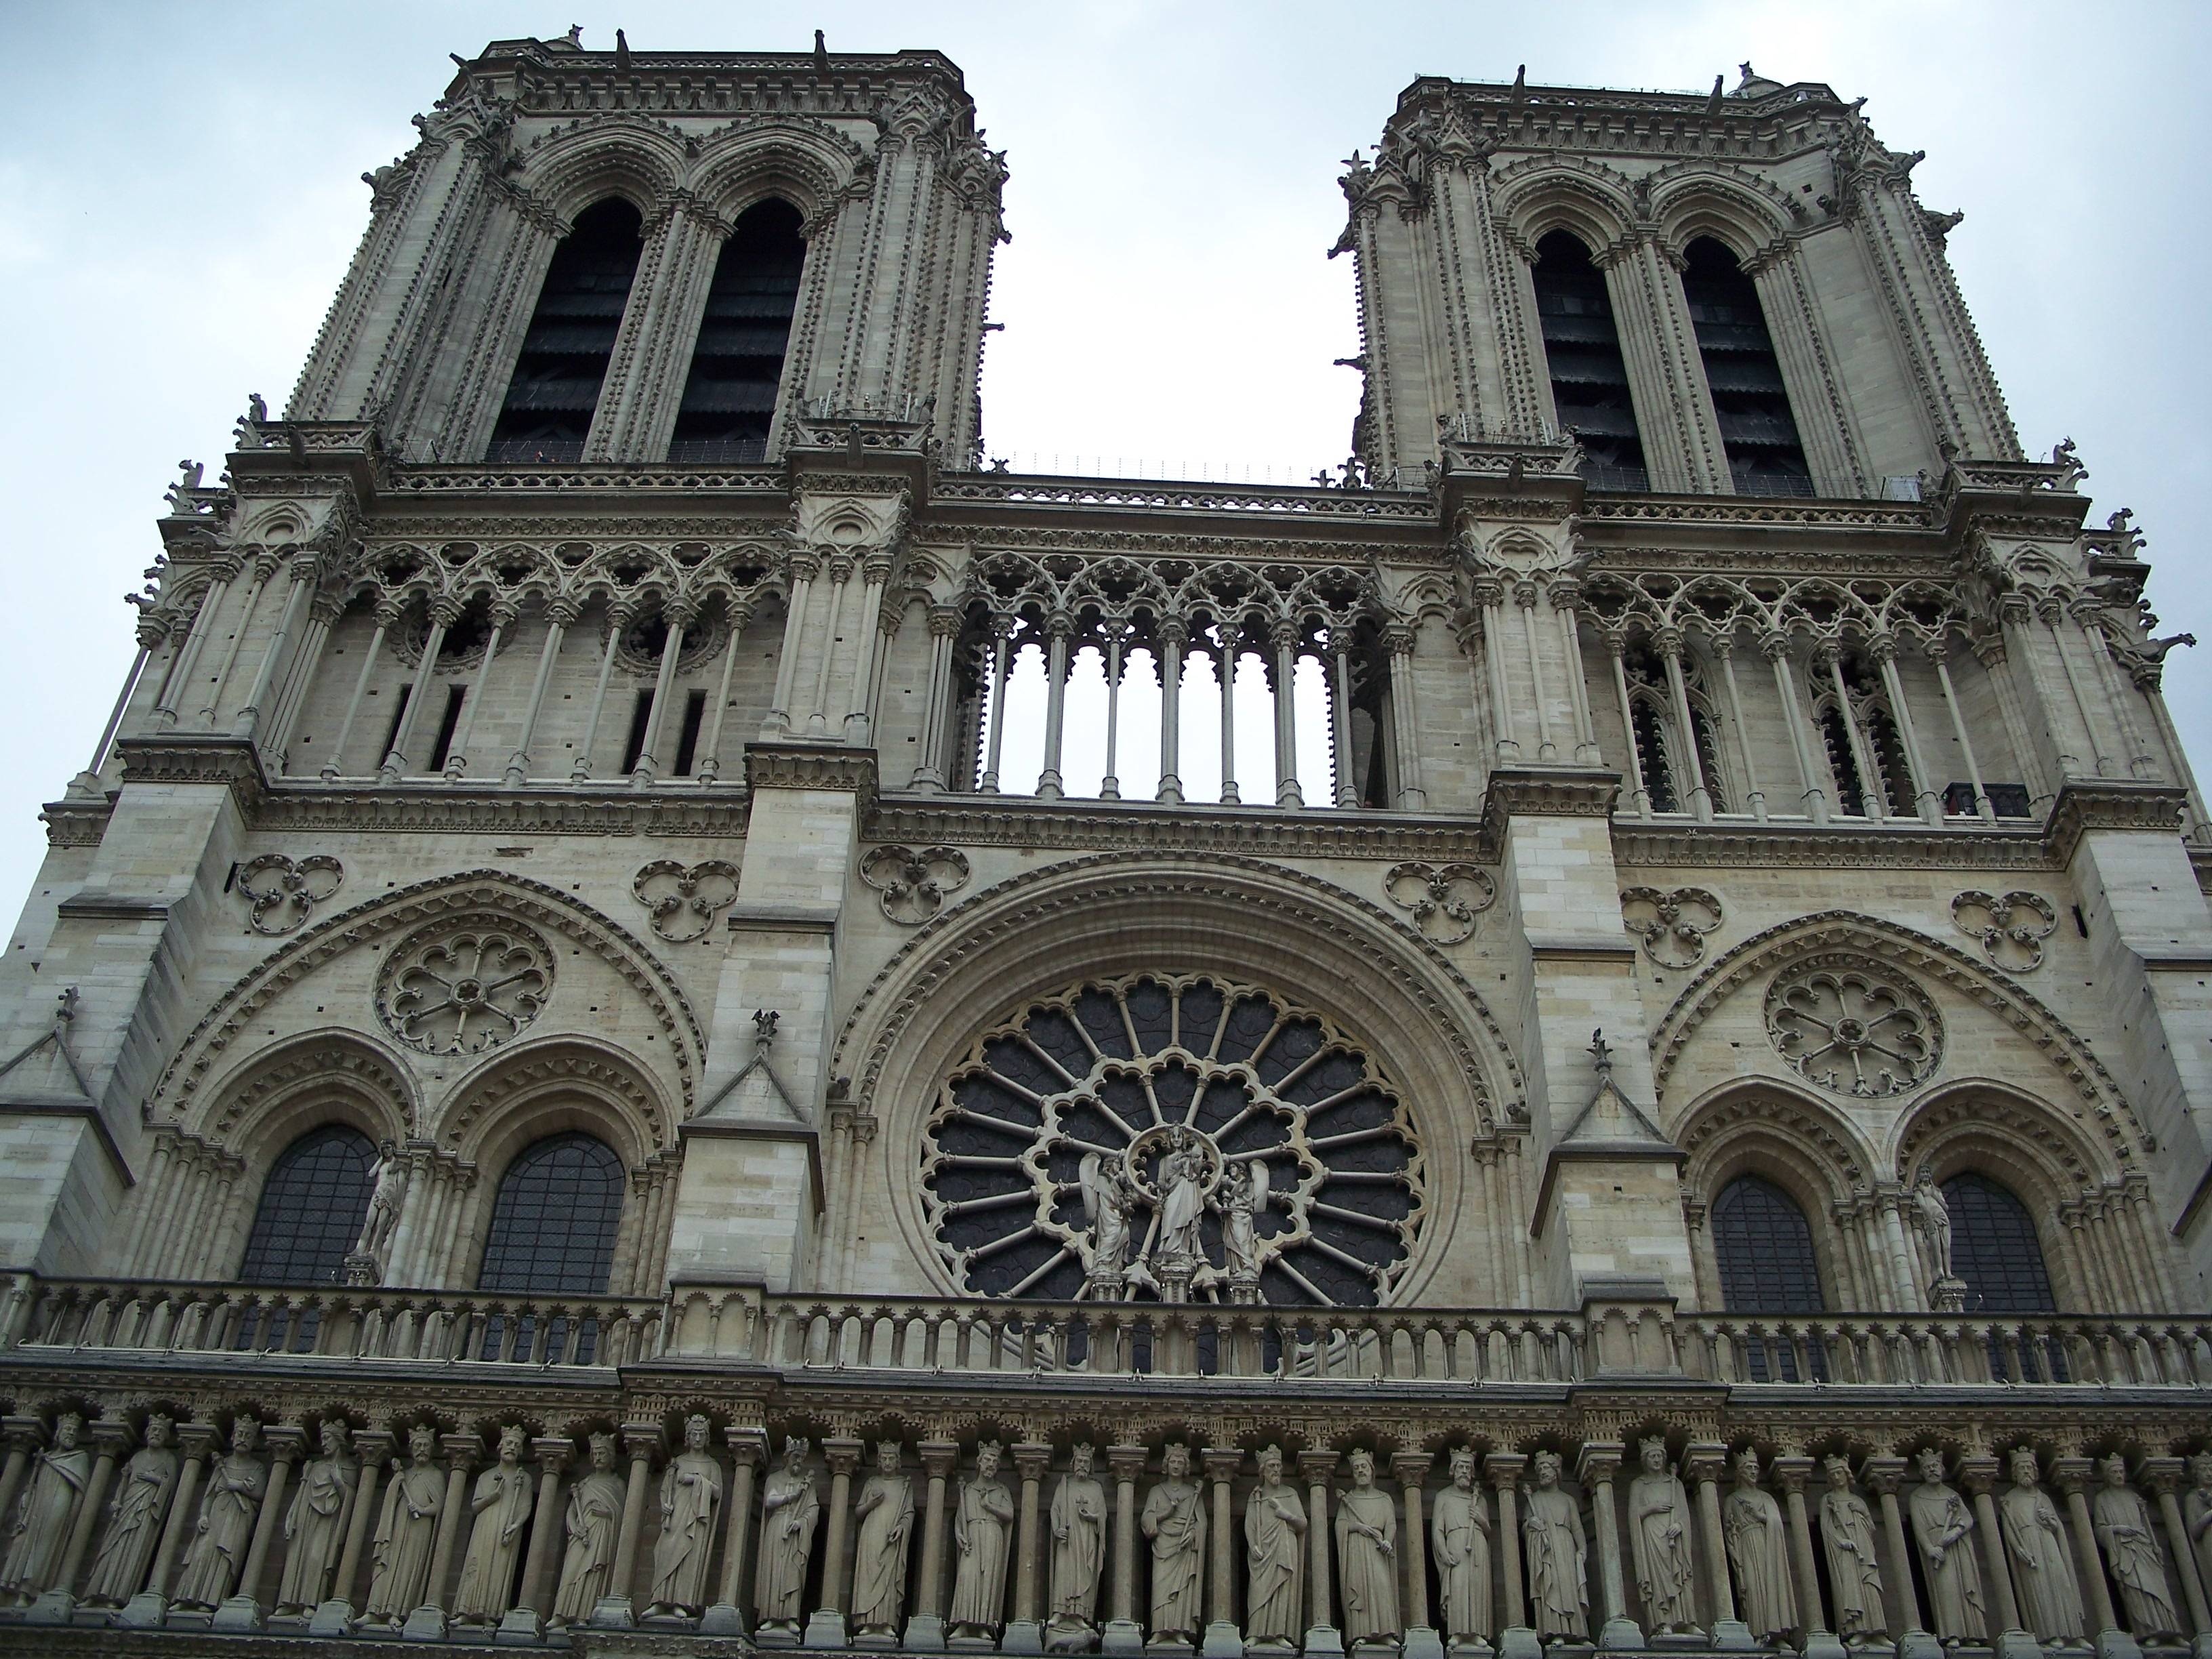 Looking Up at twin towers of the Notre Dame Cathedral, Paris